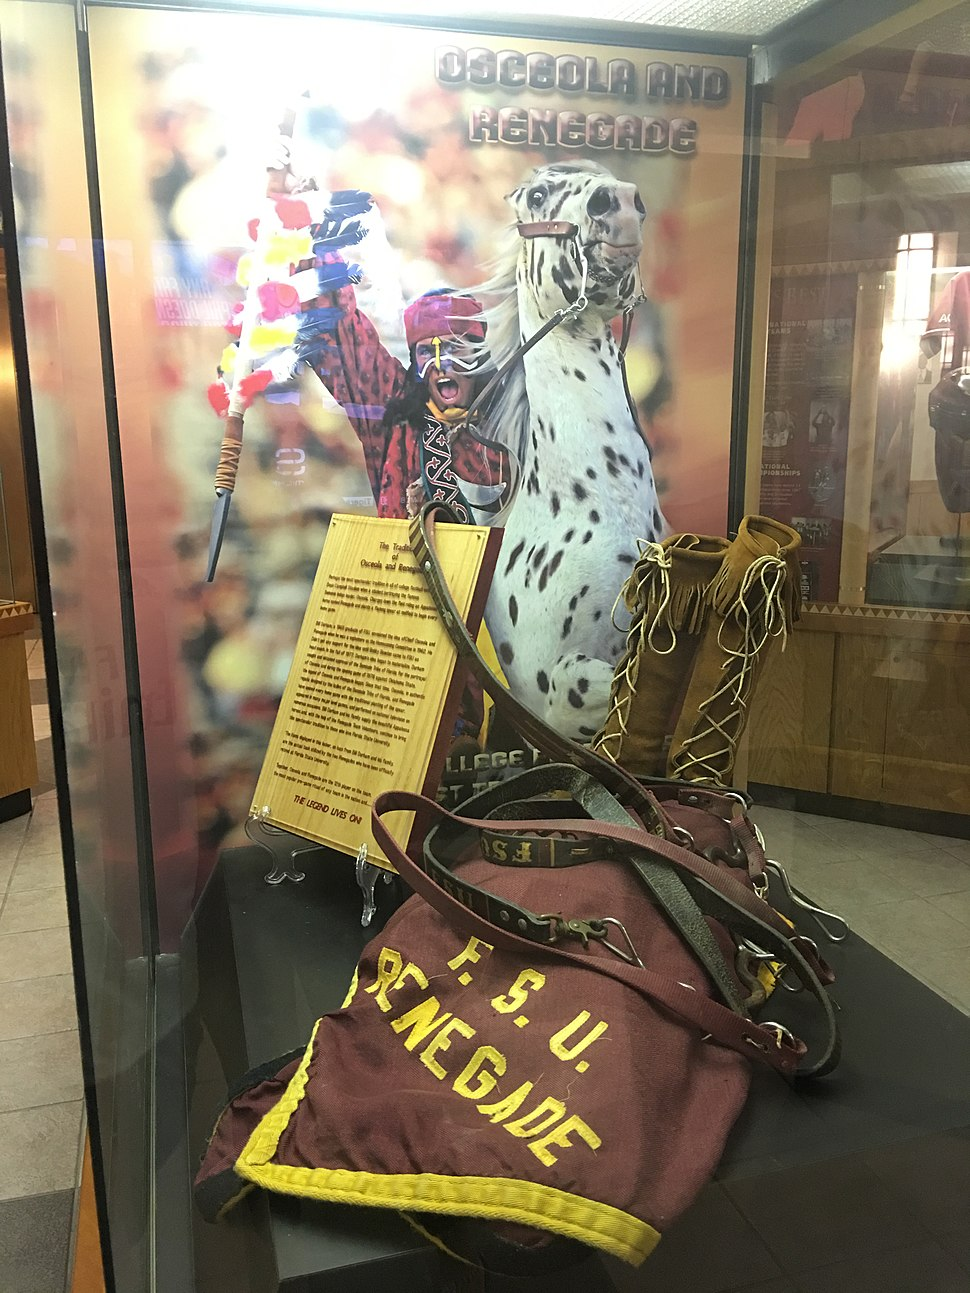 Osceola and Renegade display at the Moore Athletic Center